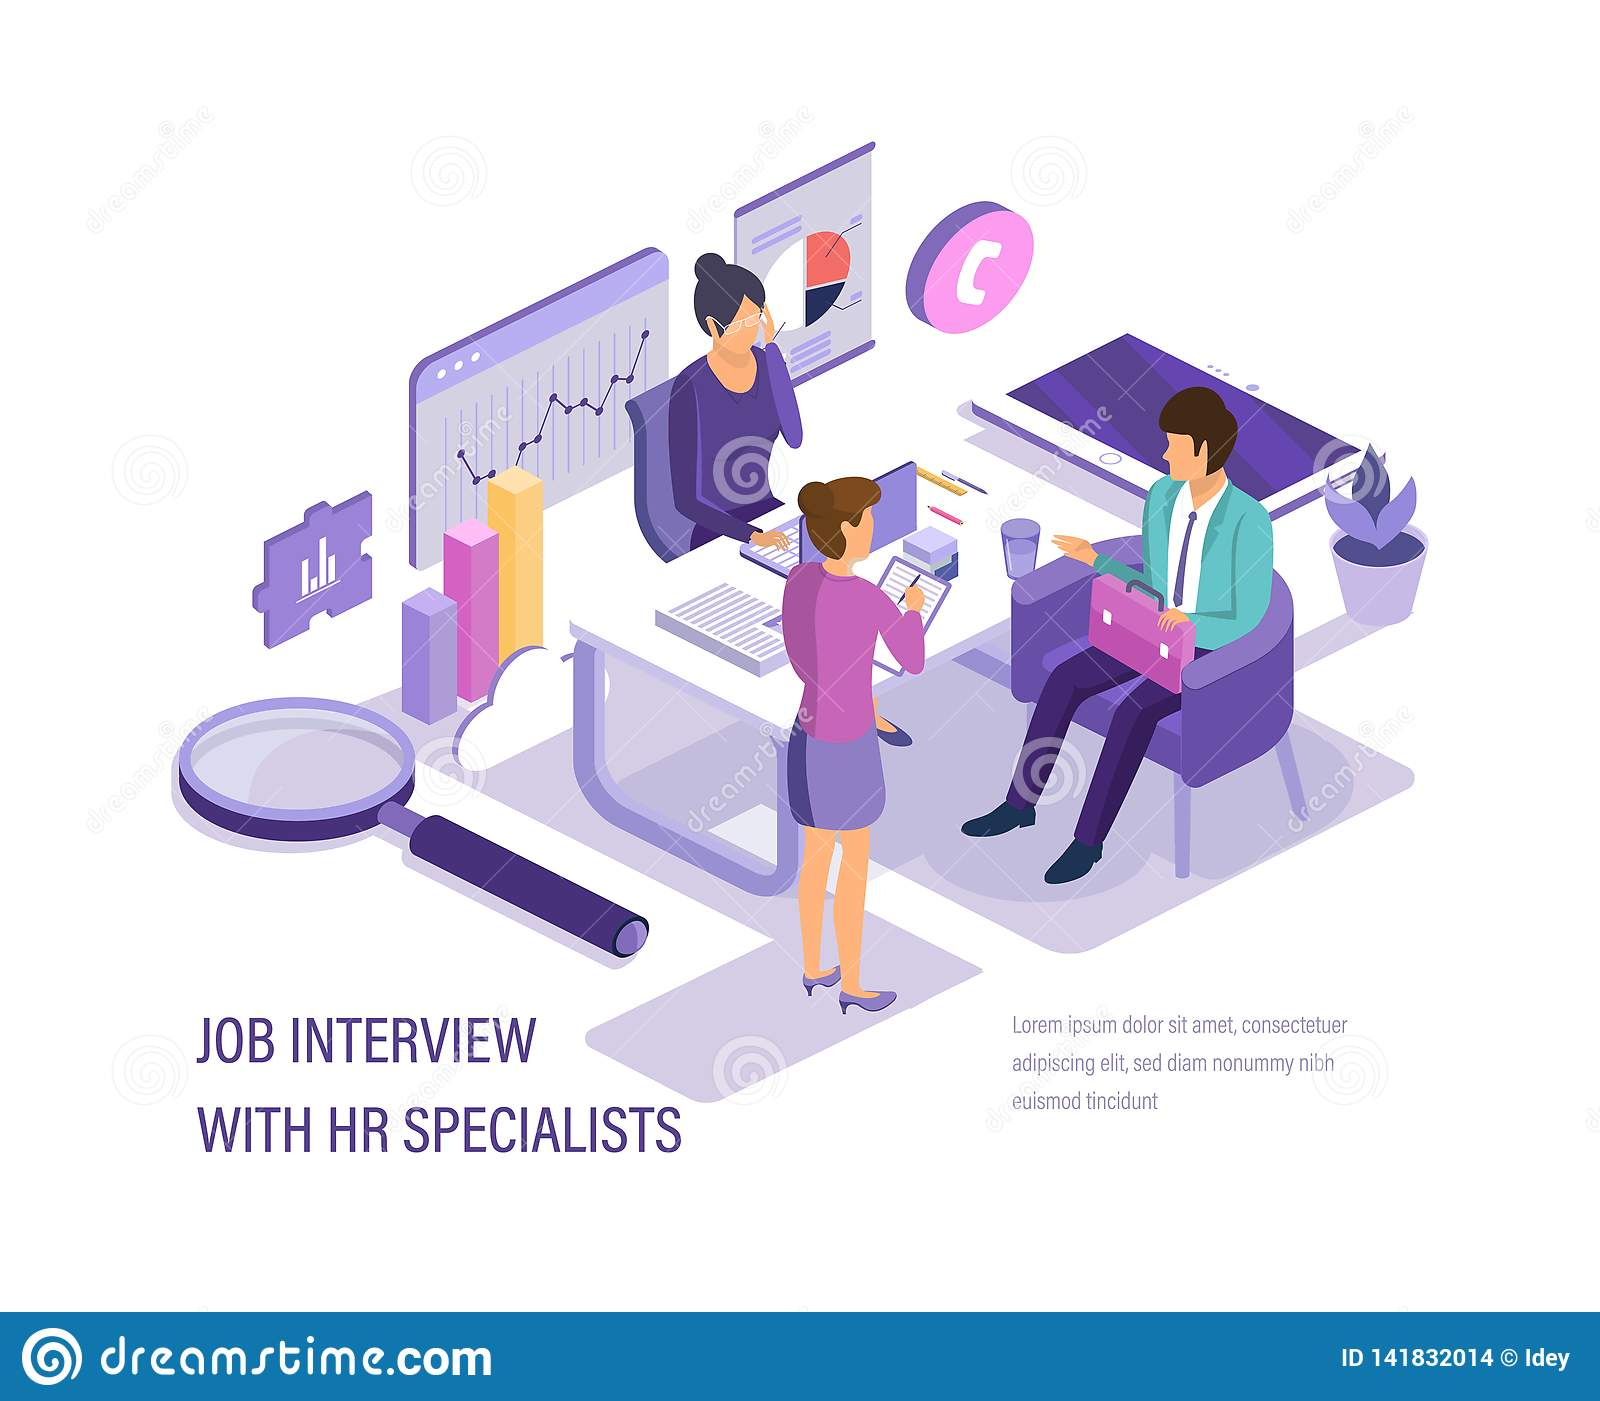 Job Interview With Hr Specialists Study Of Questionnaire And